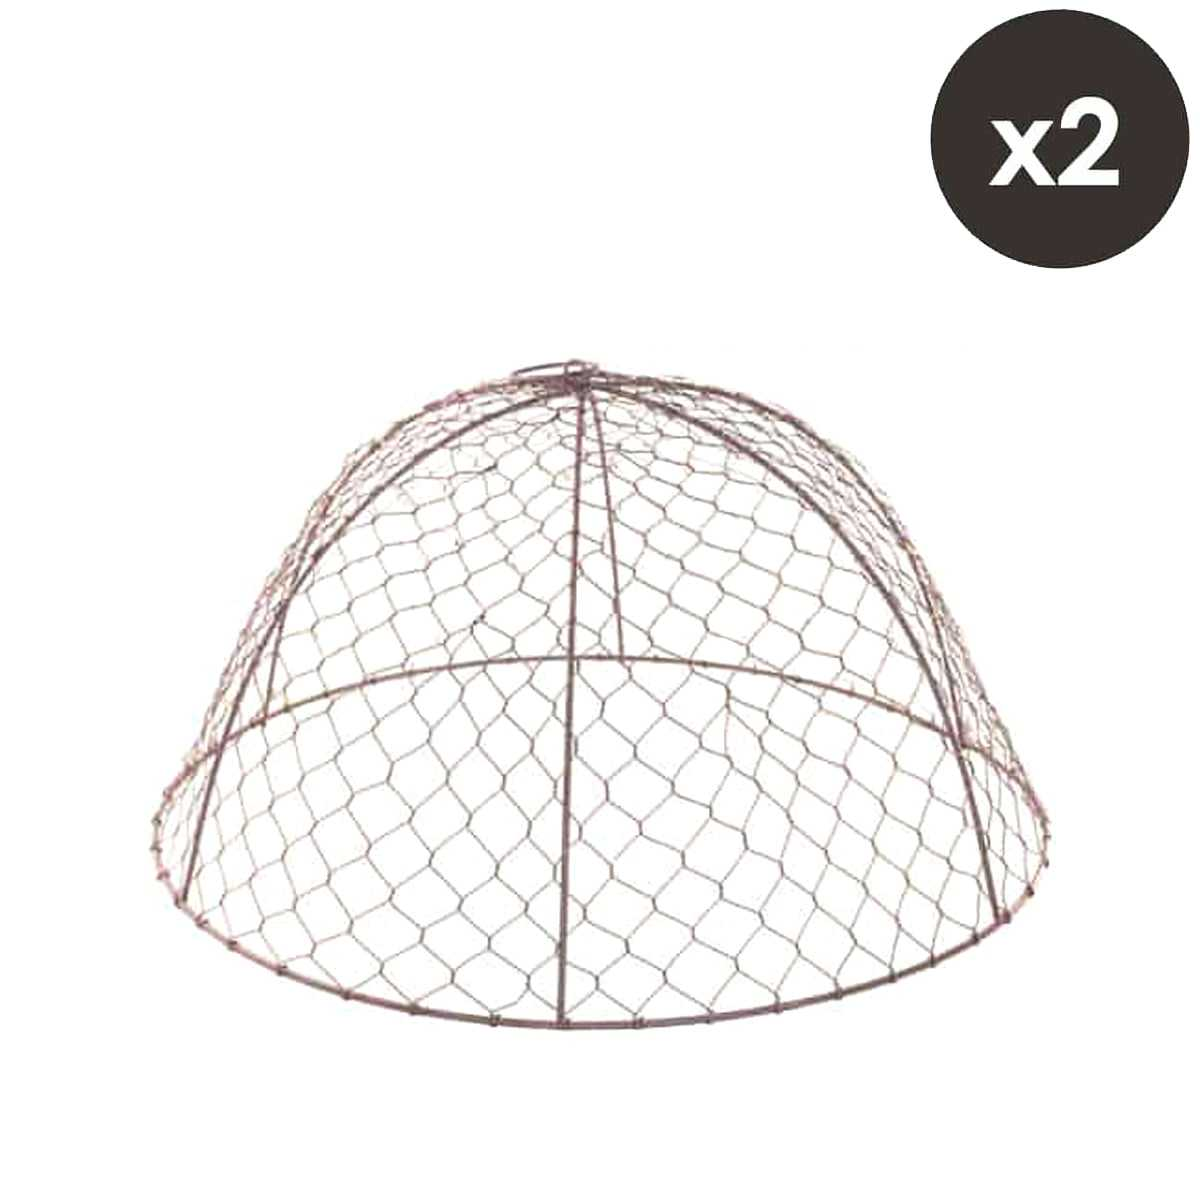 Lot de 2 cloches de protection en grillage à poule H.26cm